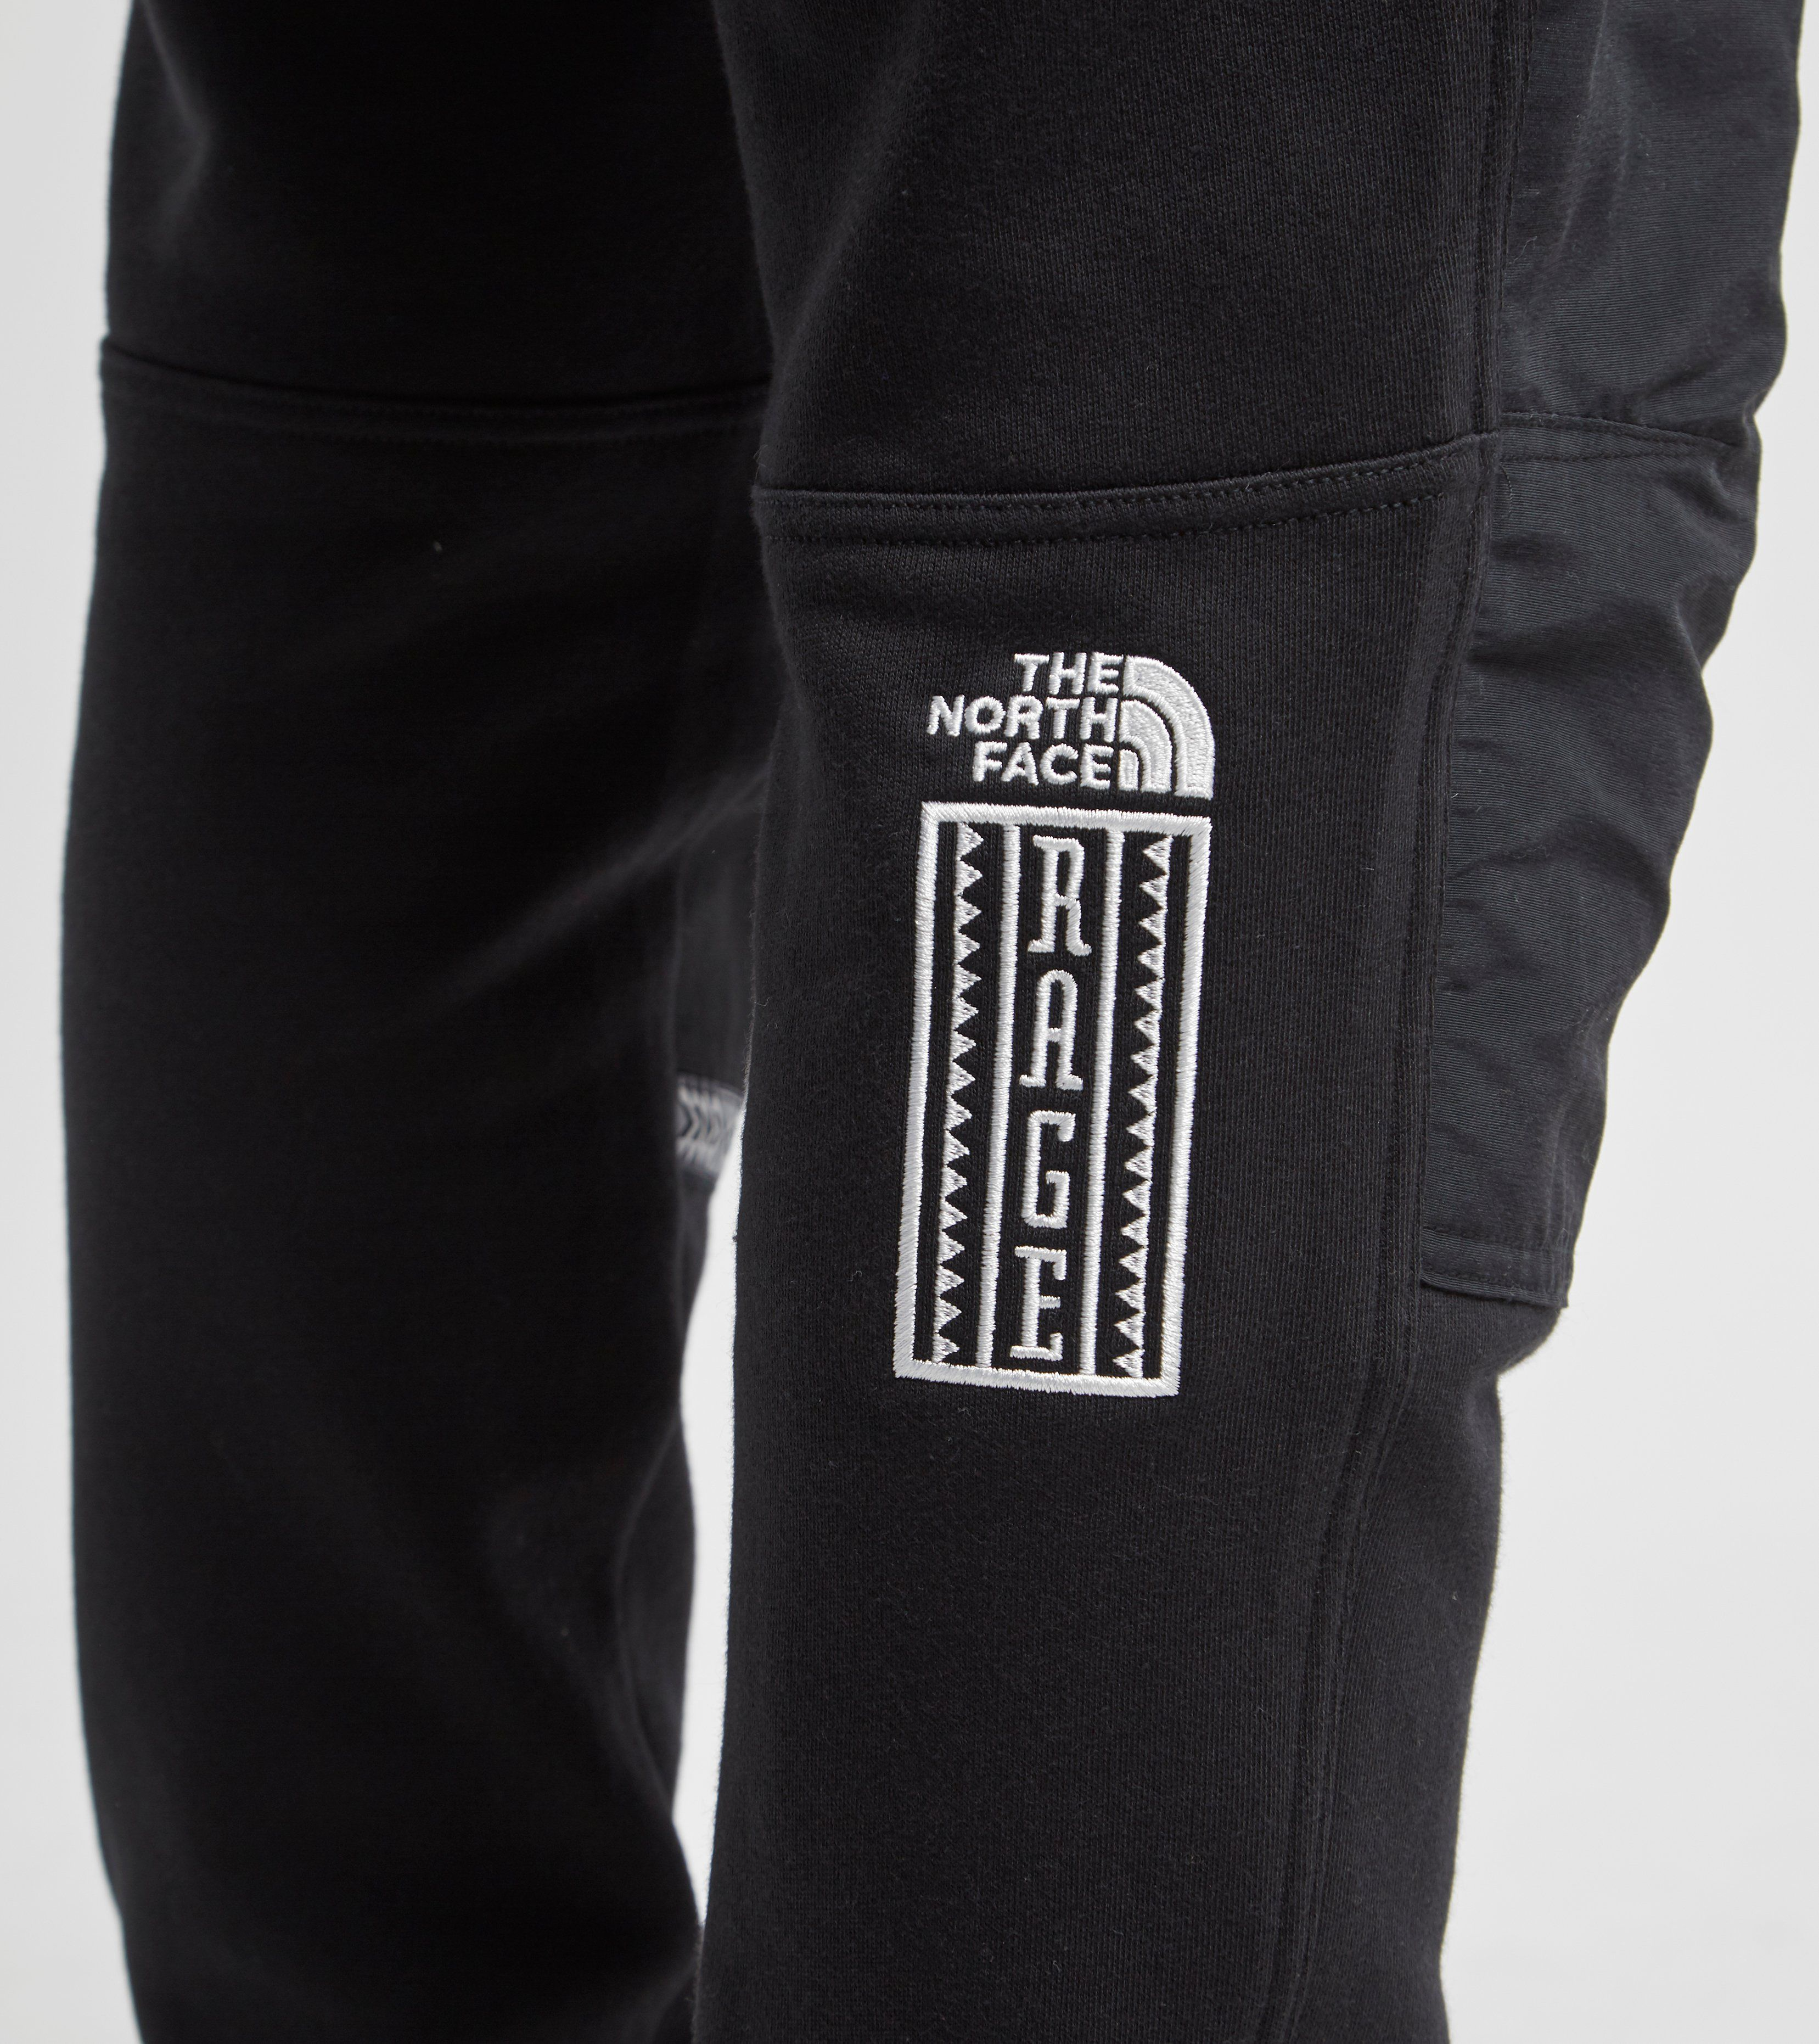 The North Face 92 Rage Fleece Pant